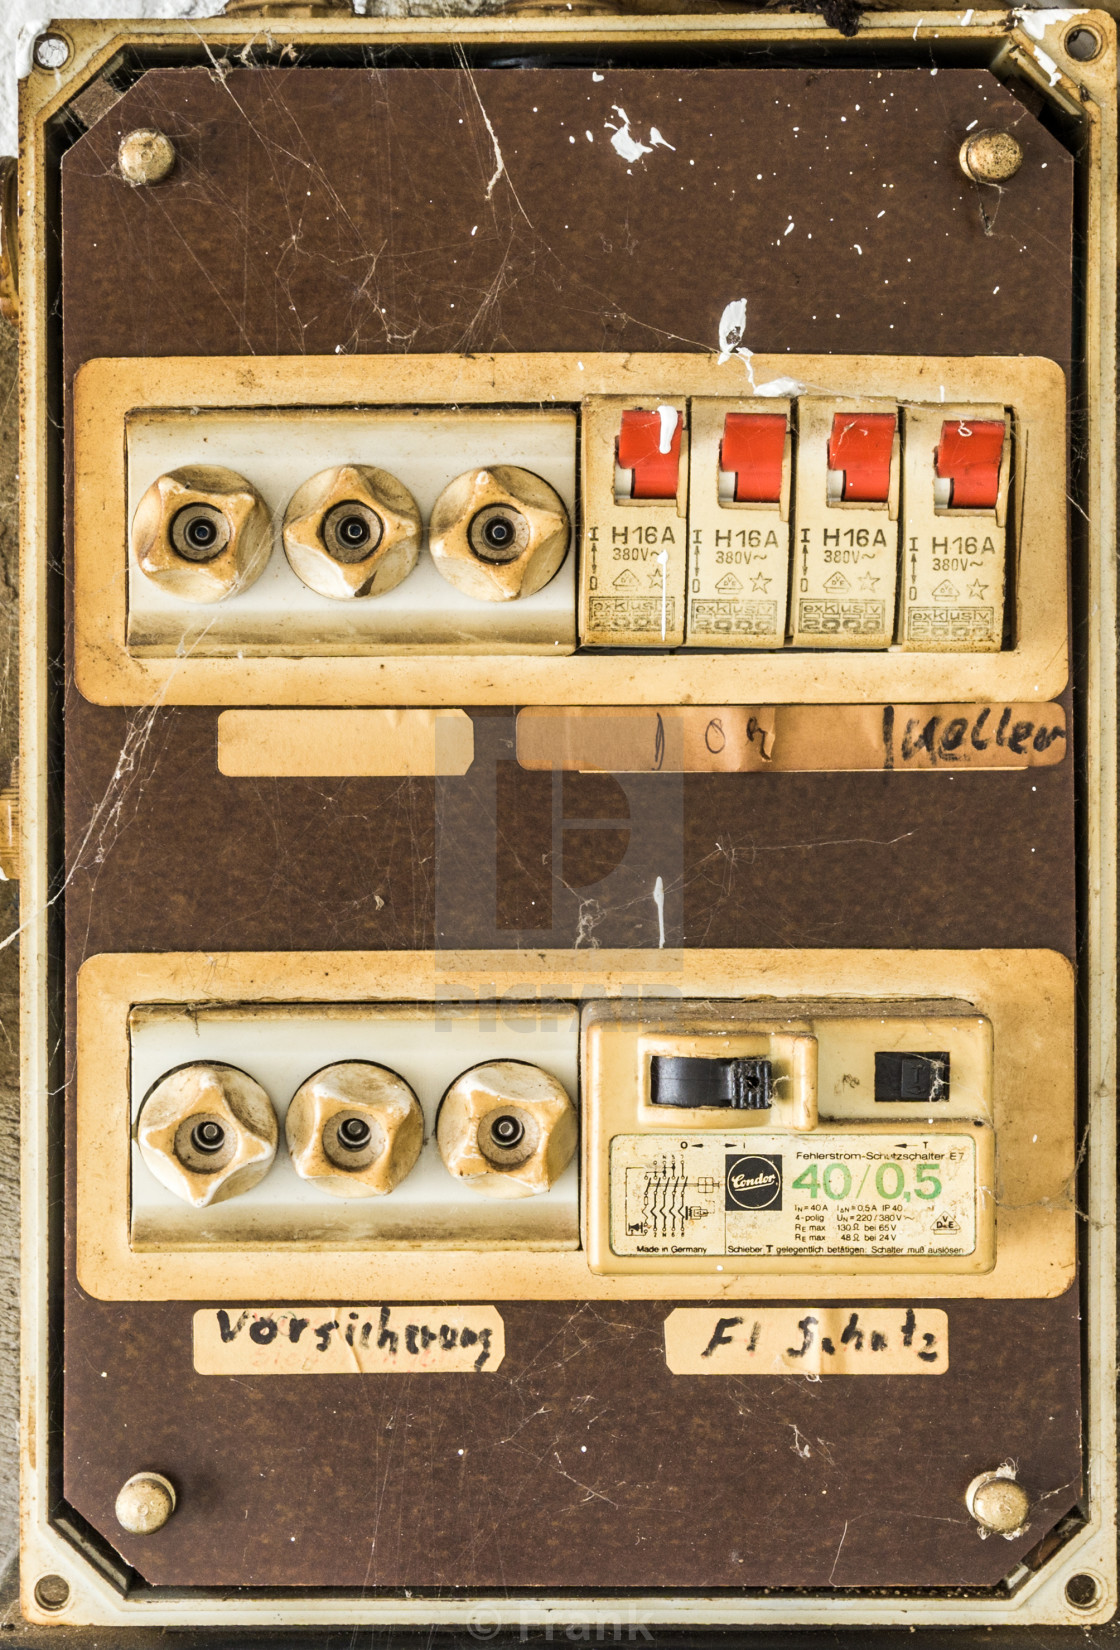 hight resolution of  old very unsafe fuse box in the basement of a house stock image